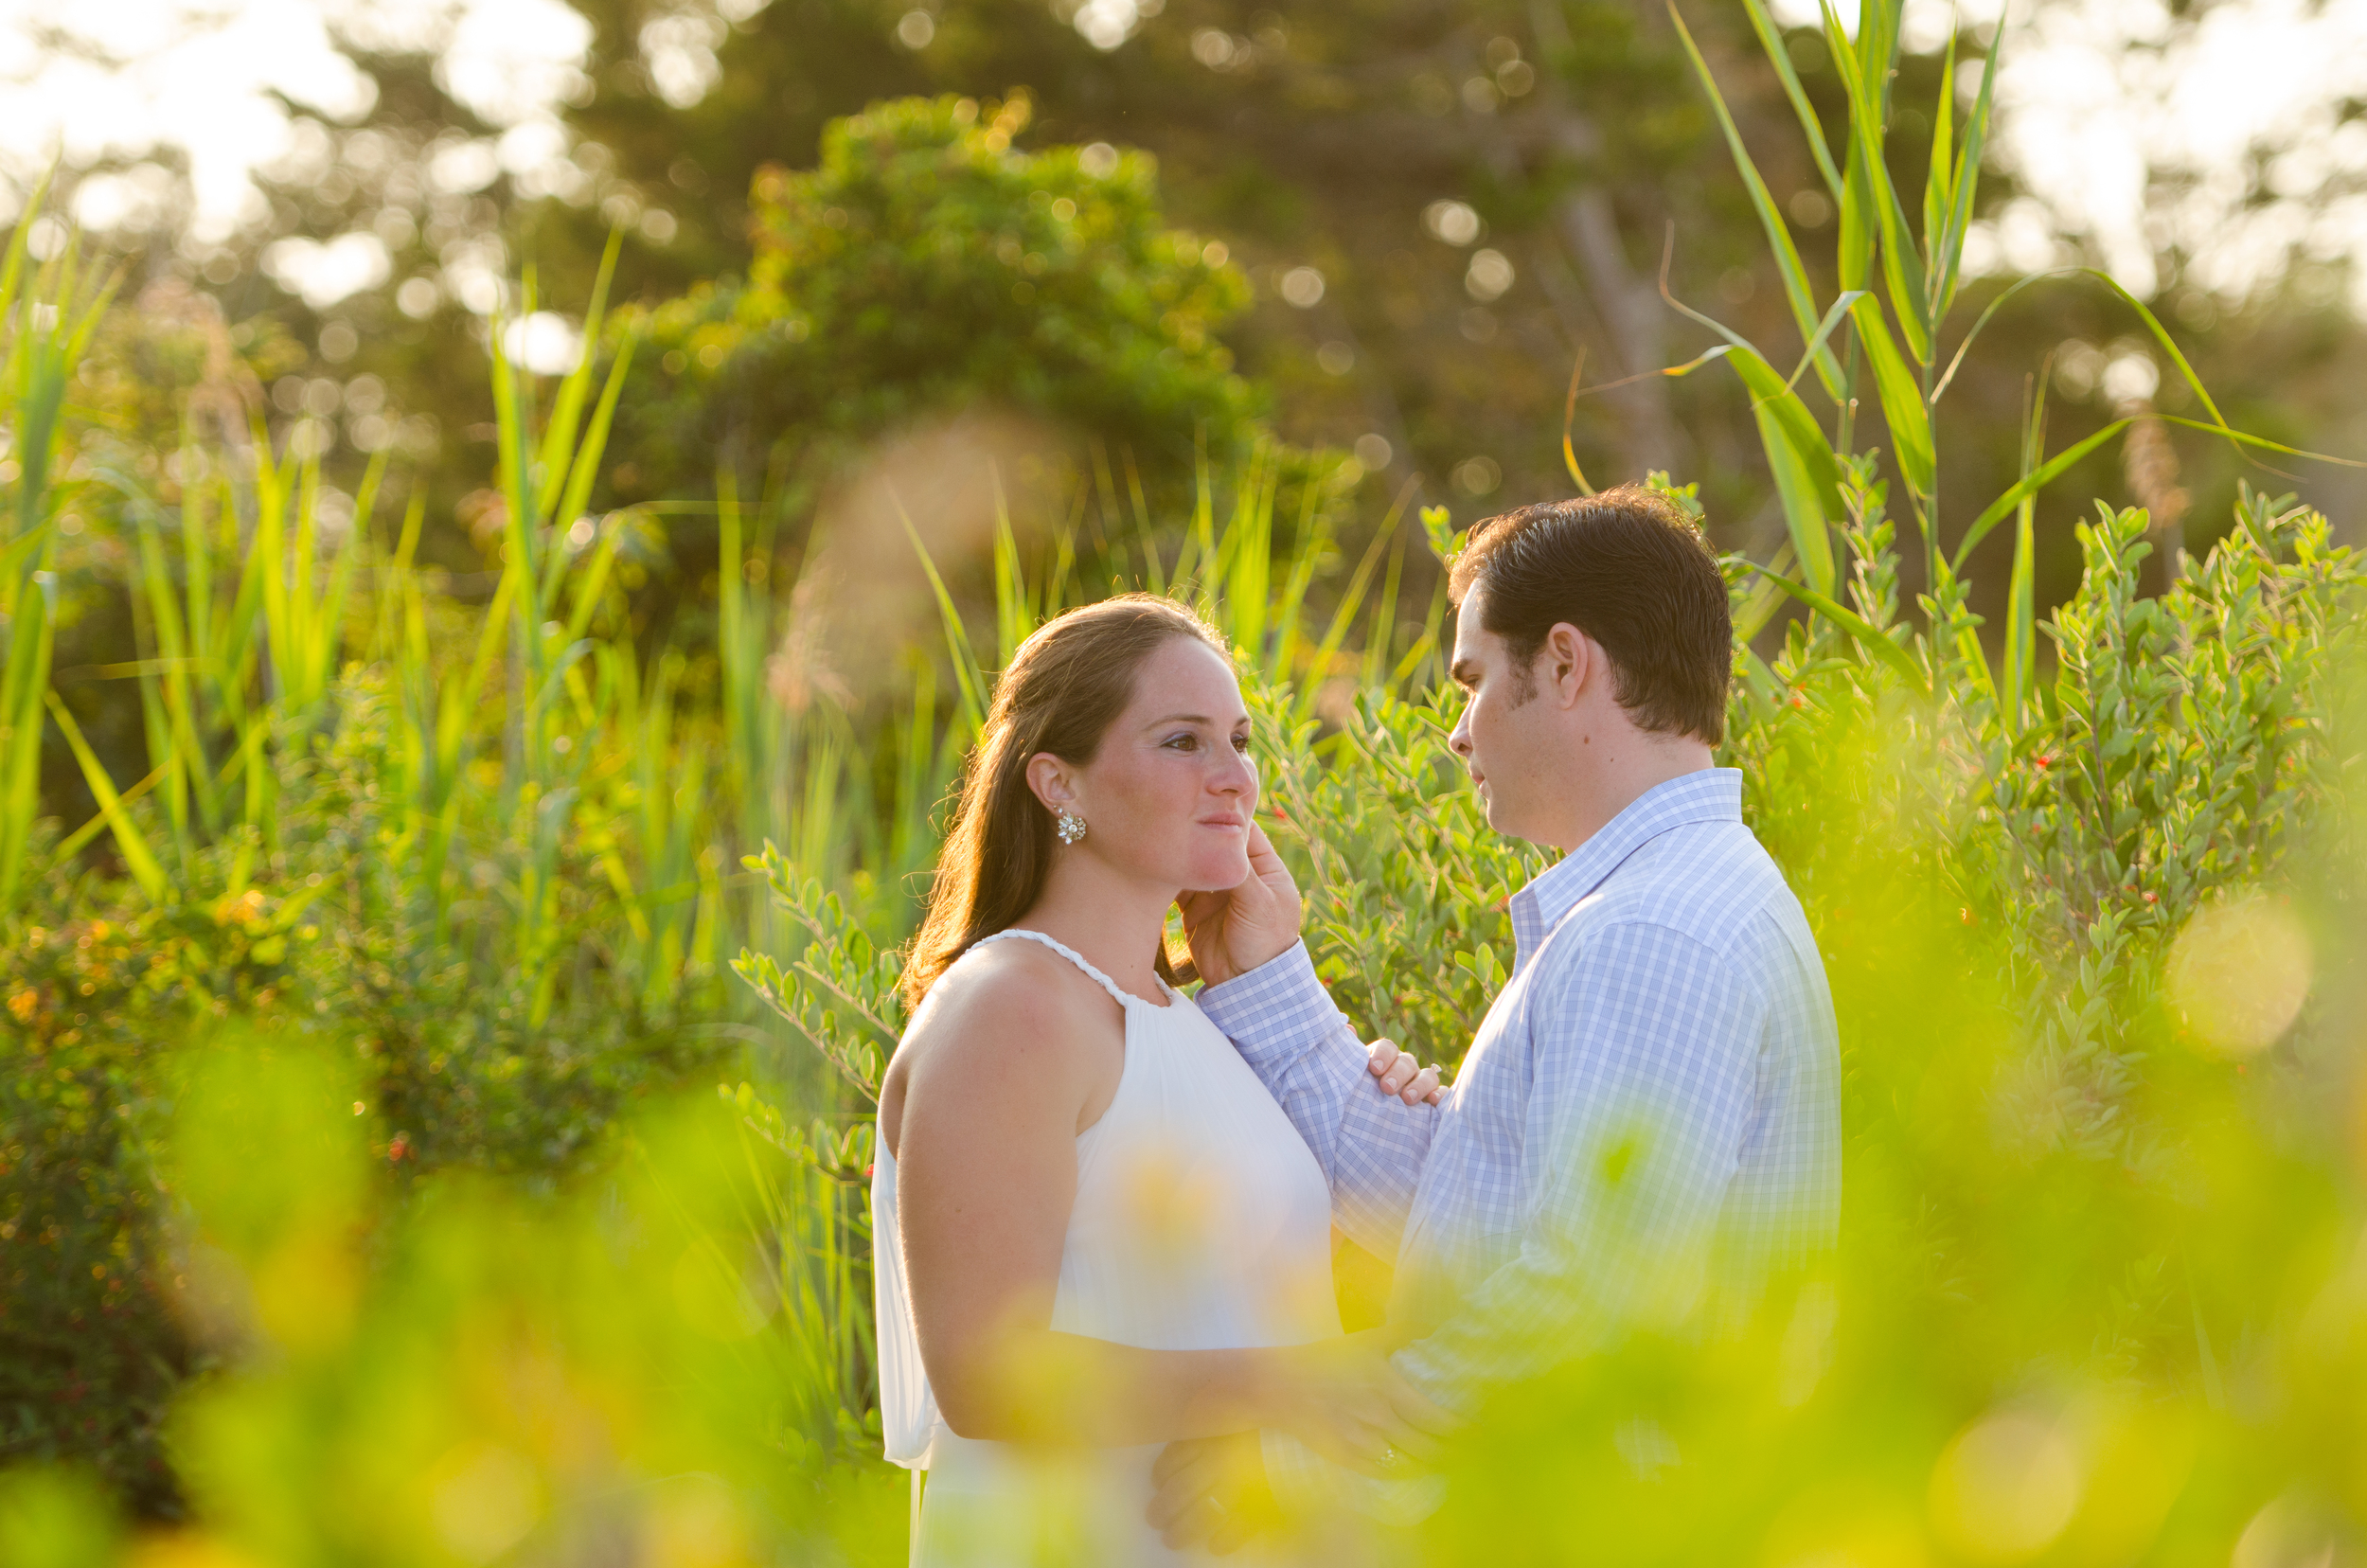 madison-connecticut-intimate-wedding-photography-chris-nachtwey-photography.jpg